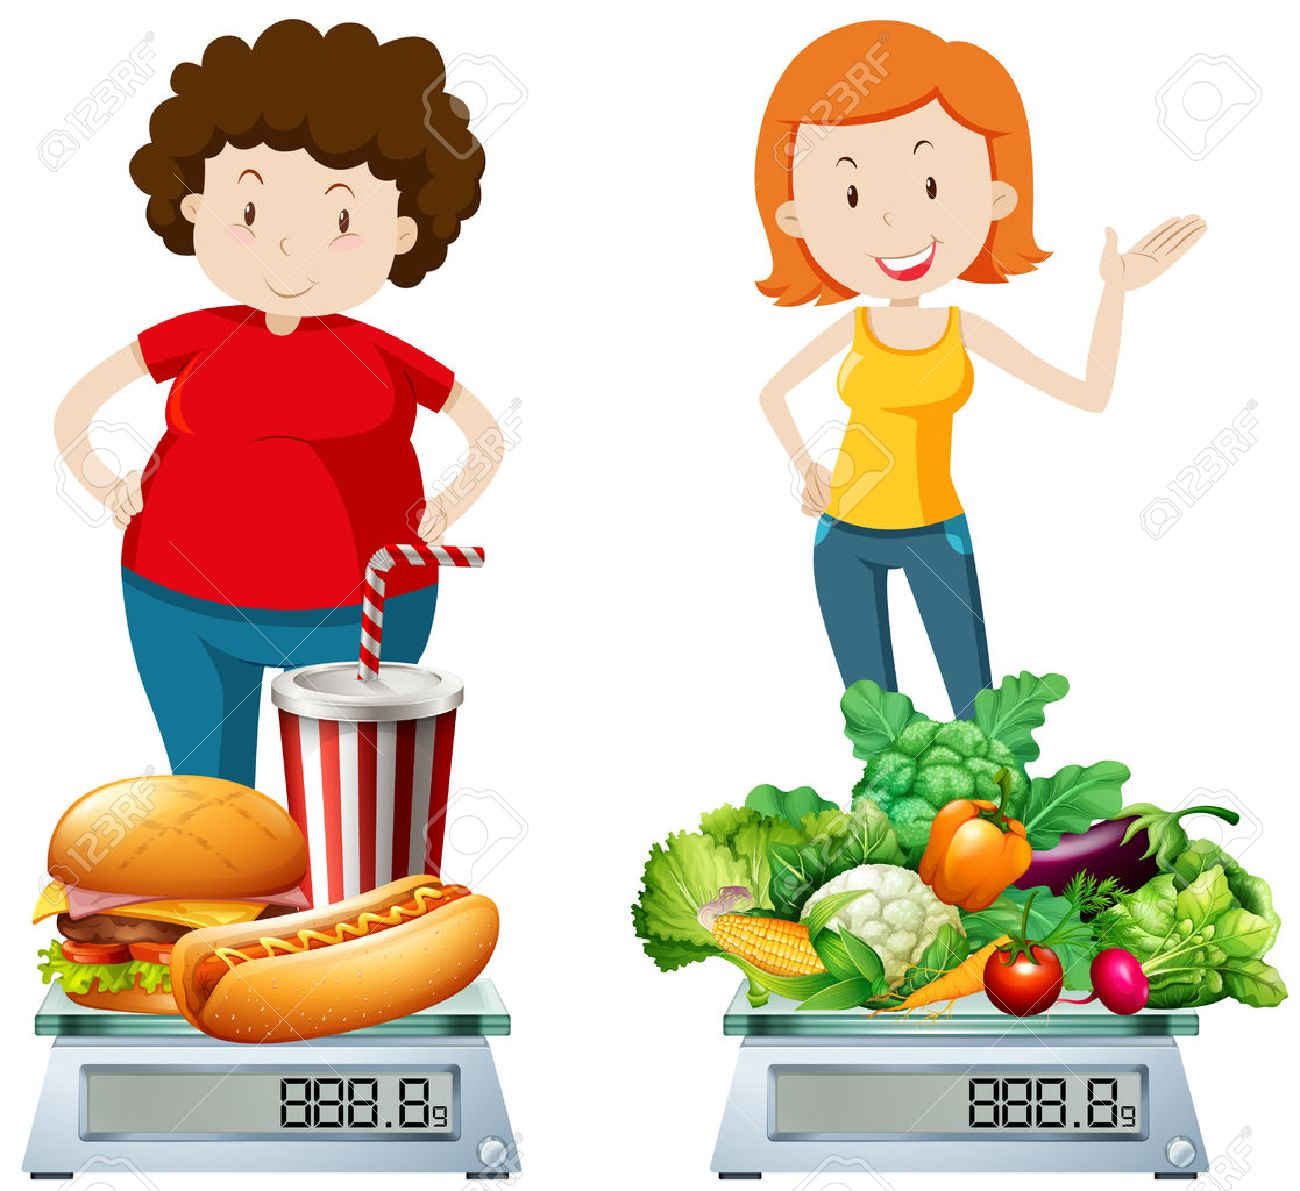 Types Of Healthy Food And Unhealthy Food Silver Fox